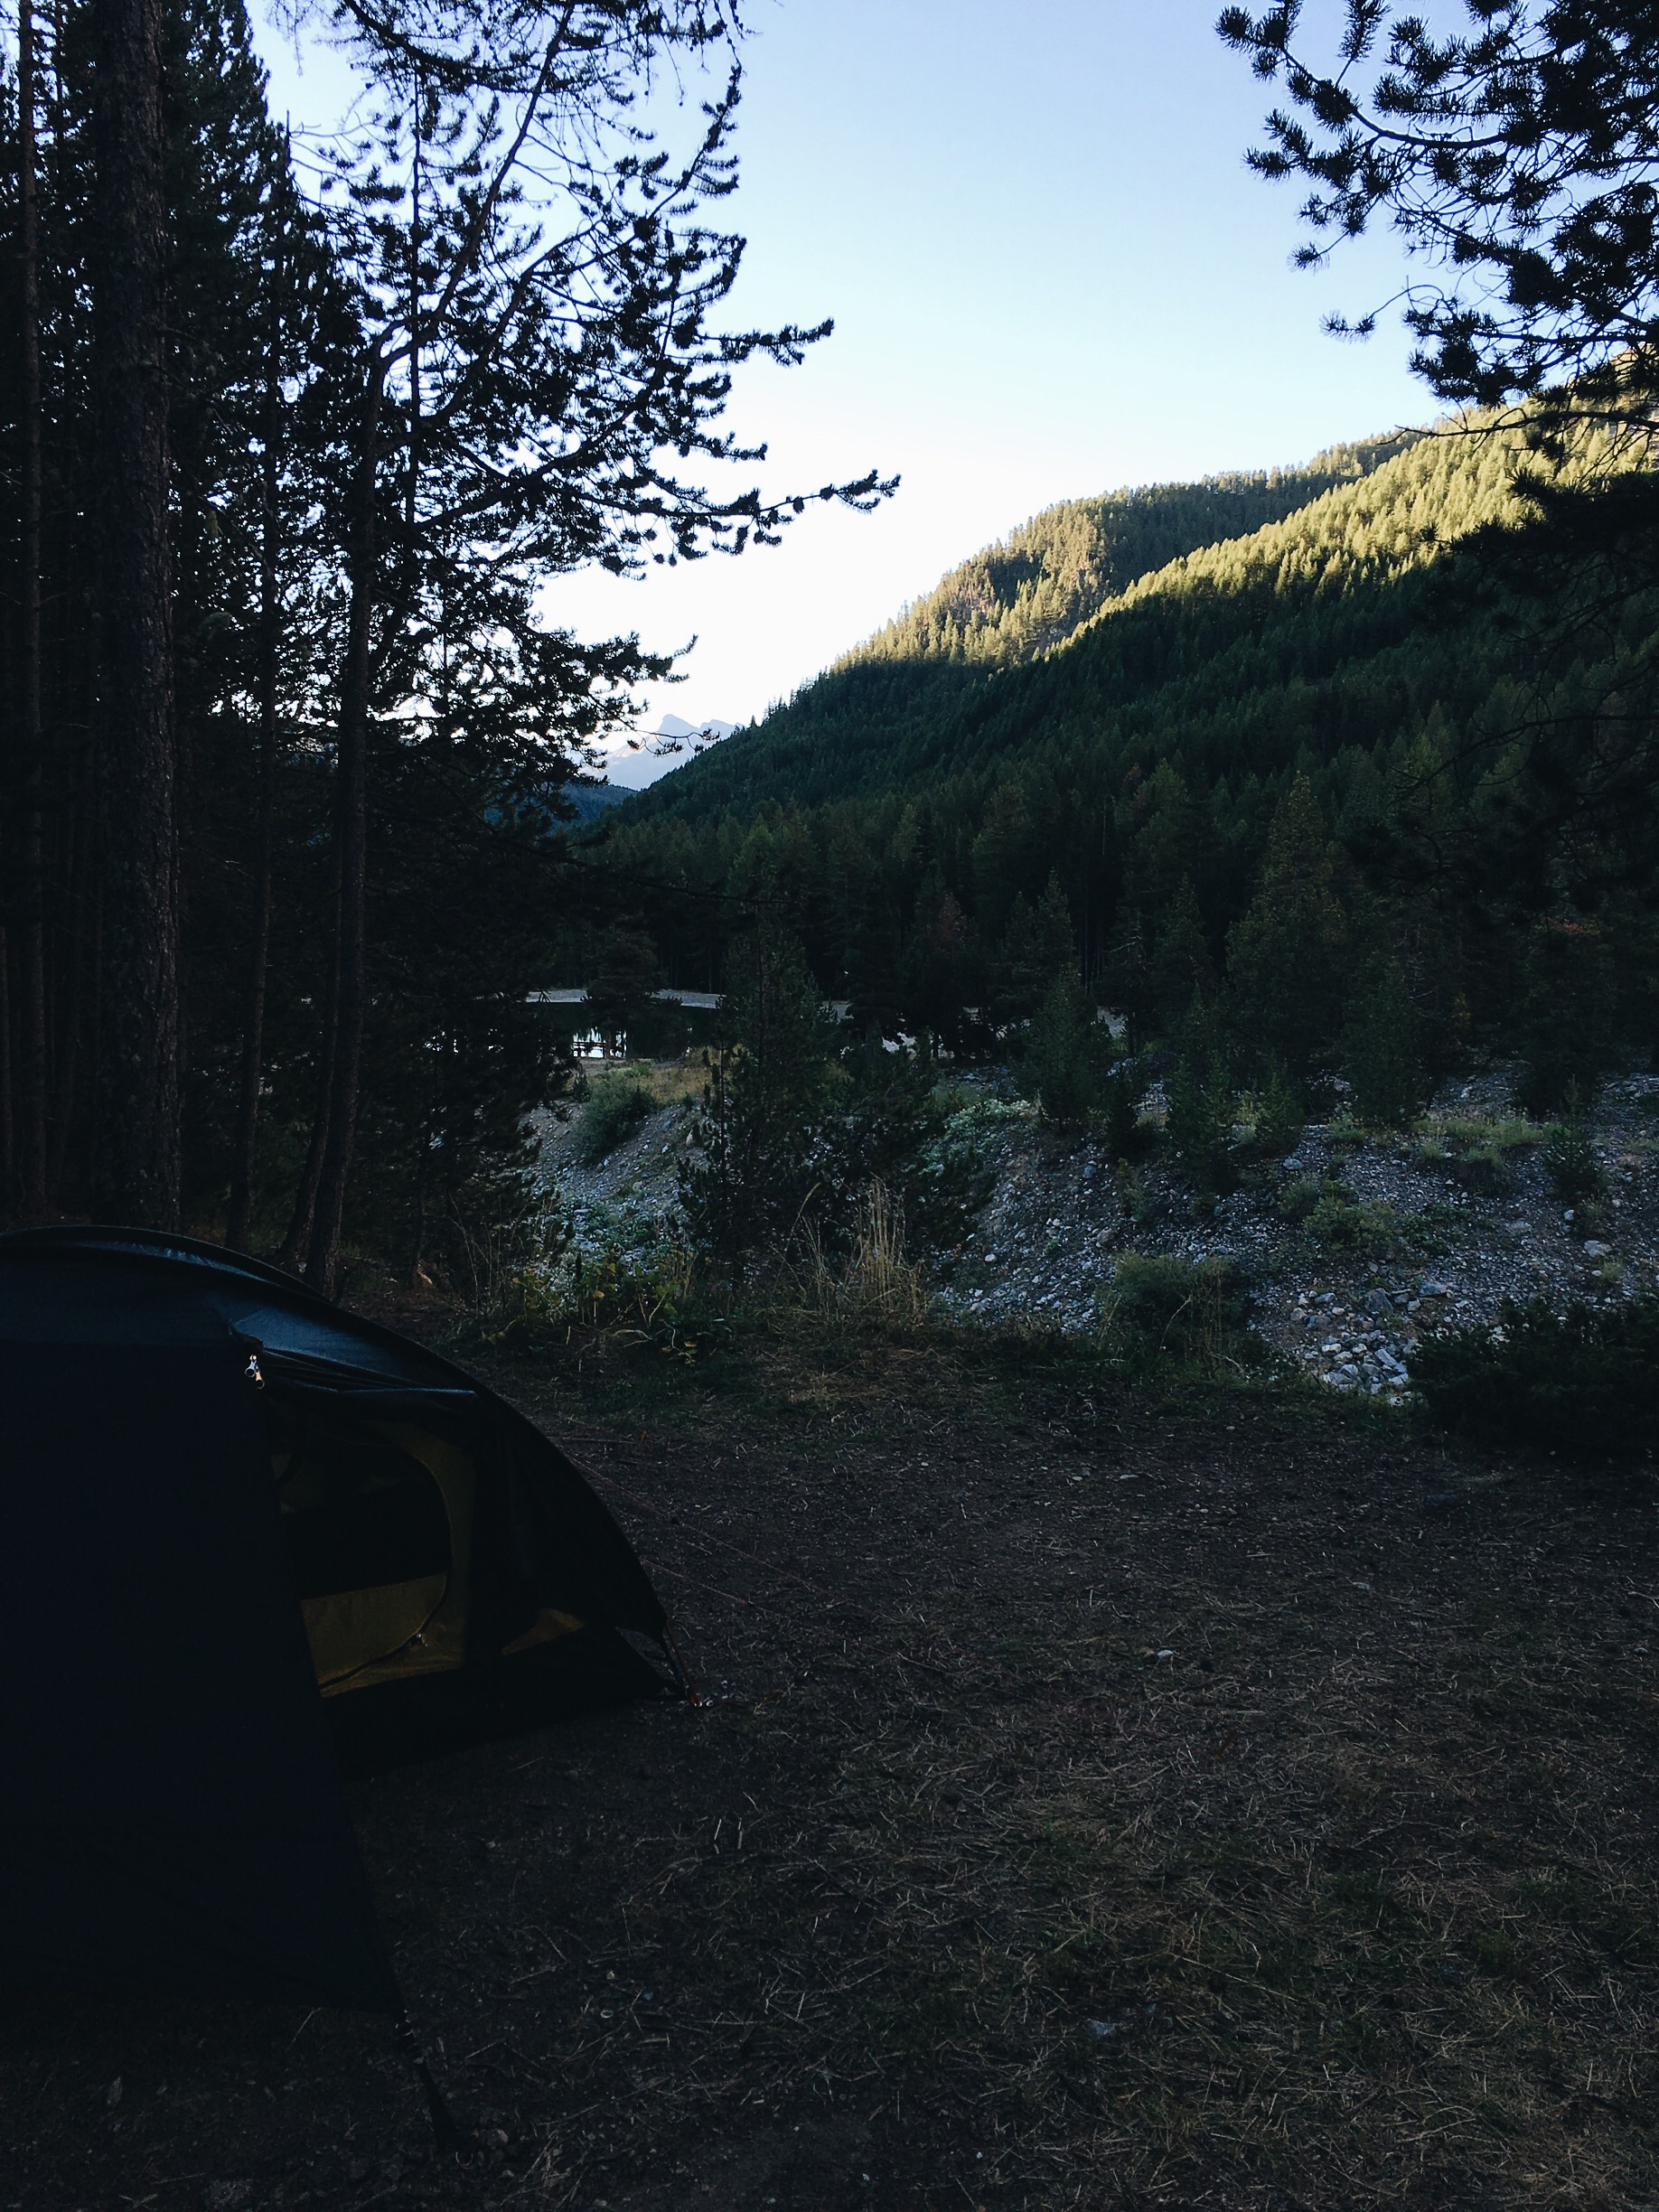 Tonight's pitch in the forest.